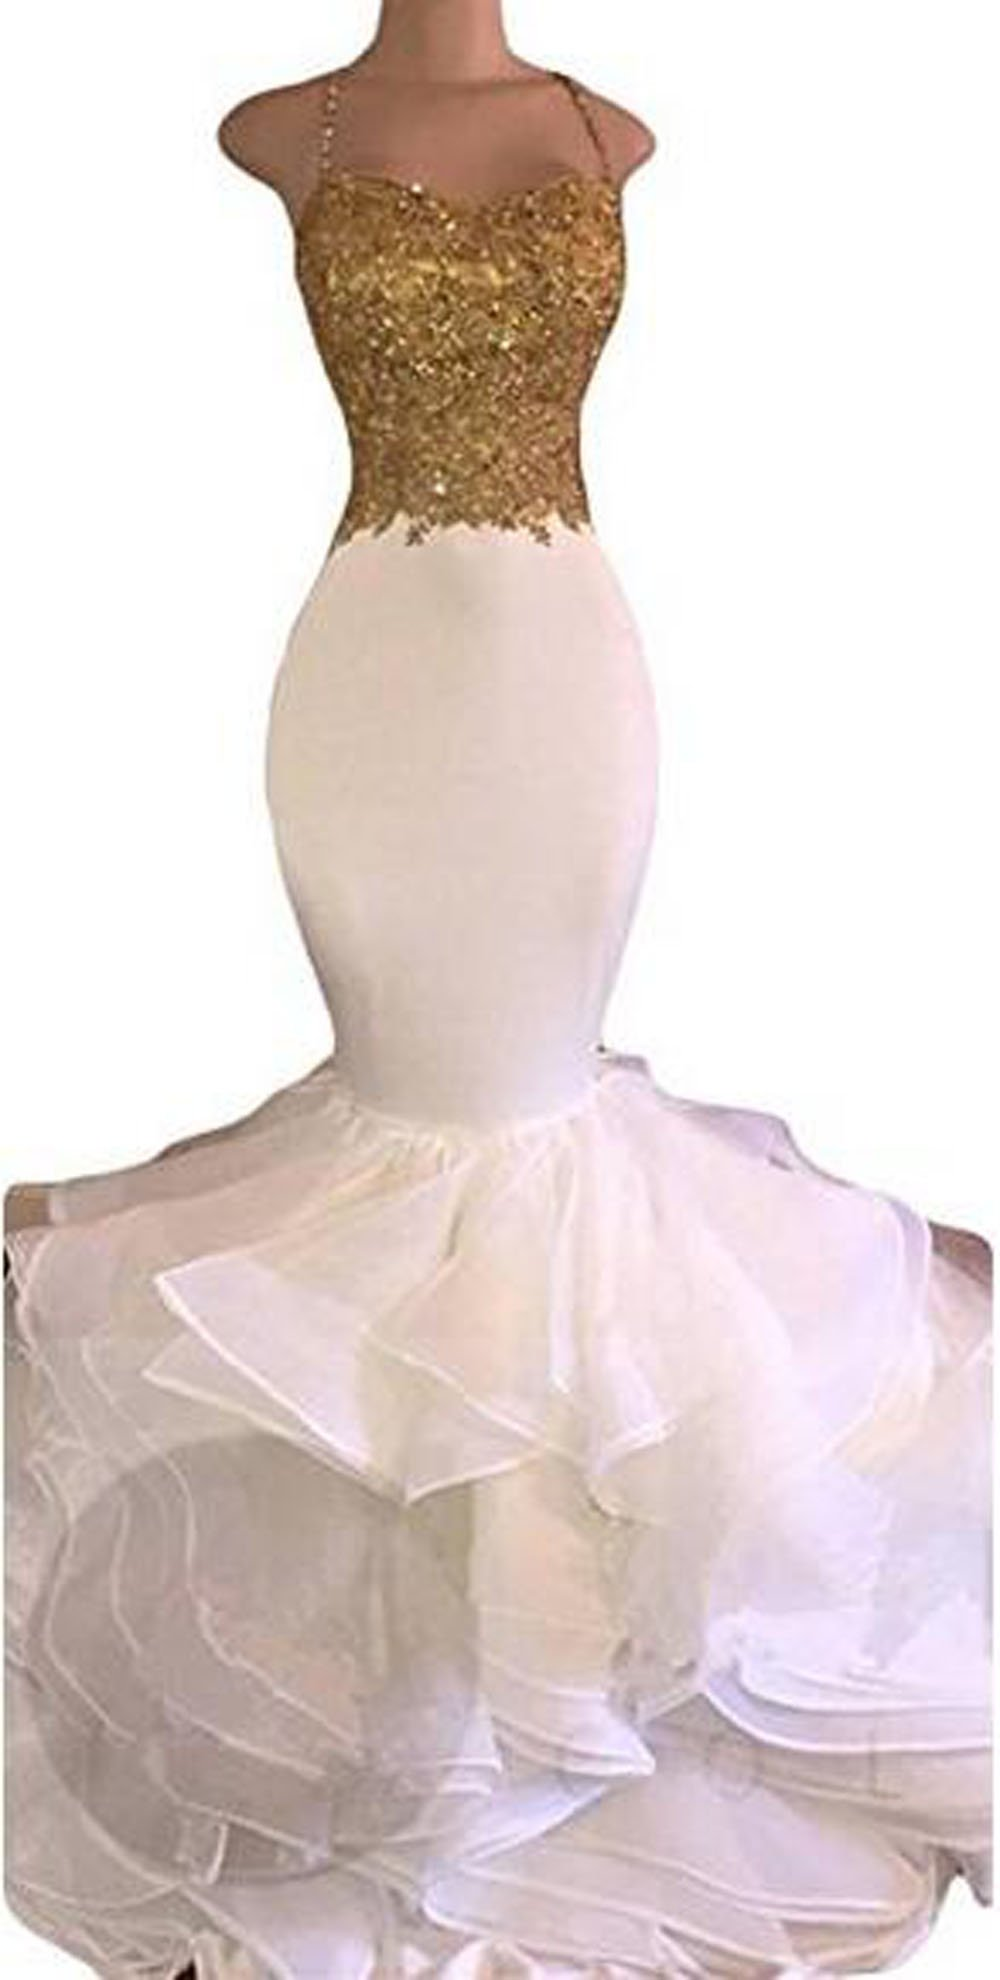 Uryouthstyle Sexy Puffy Spghetti Beaded Mermaid Evening Prom Dresses US14 Gold